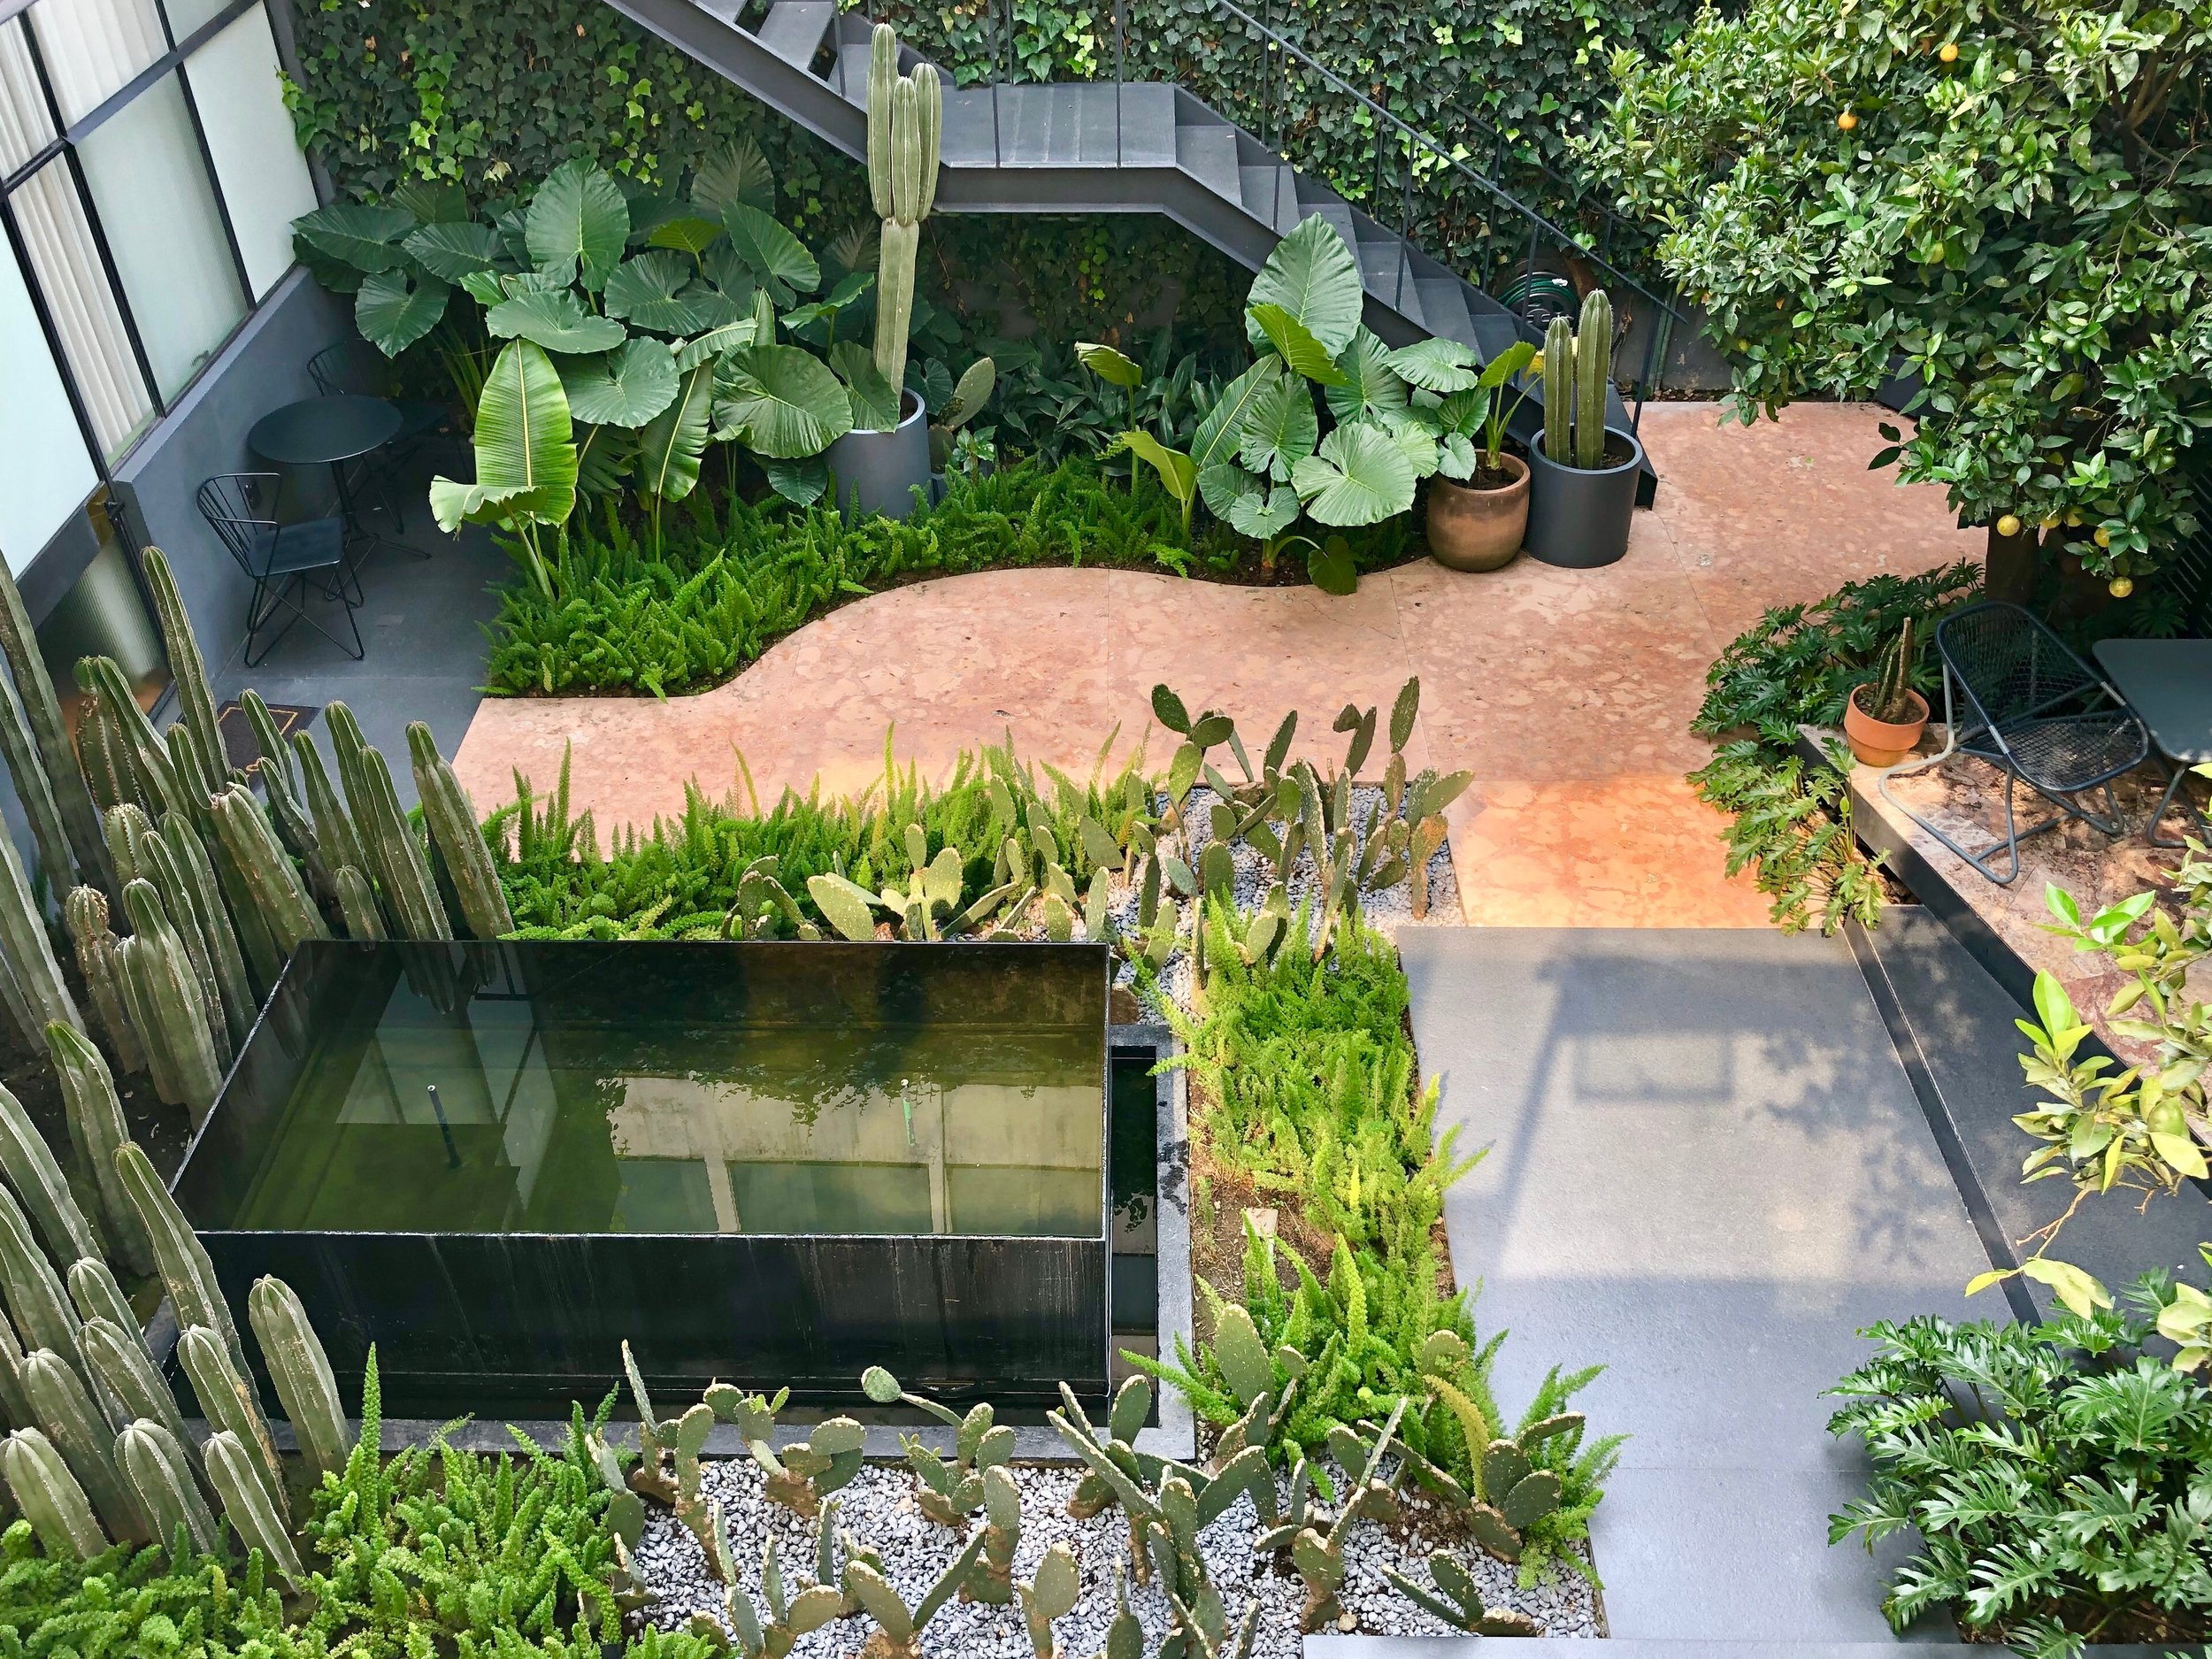 Looking down upon the courtyard patio